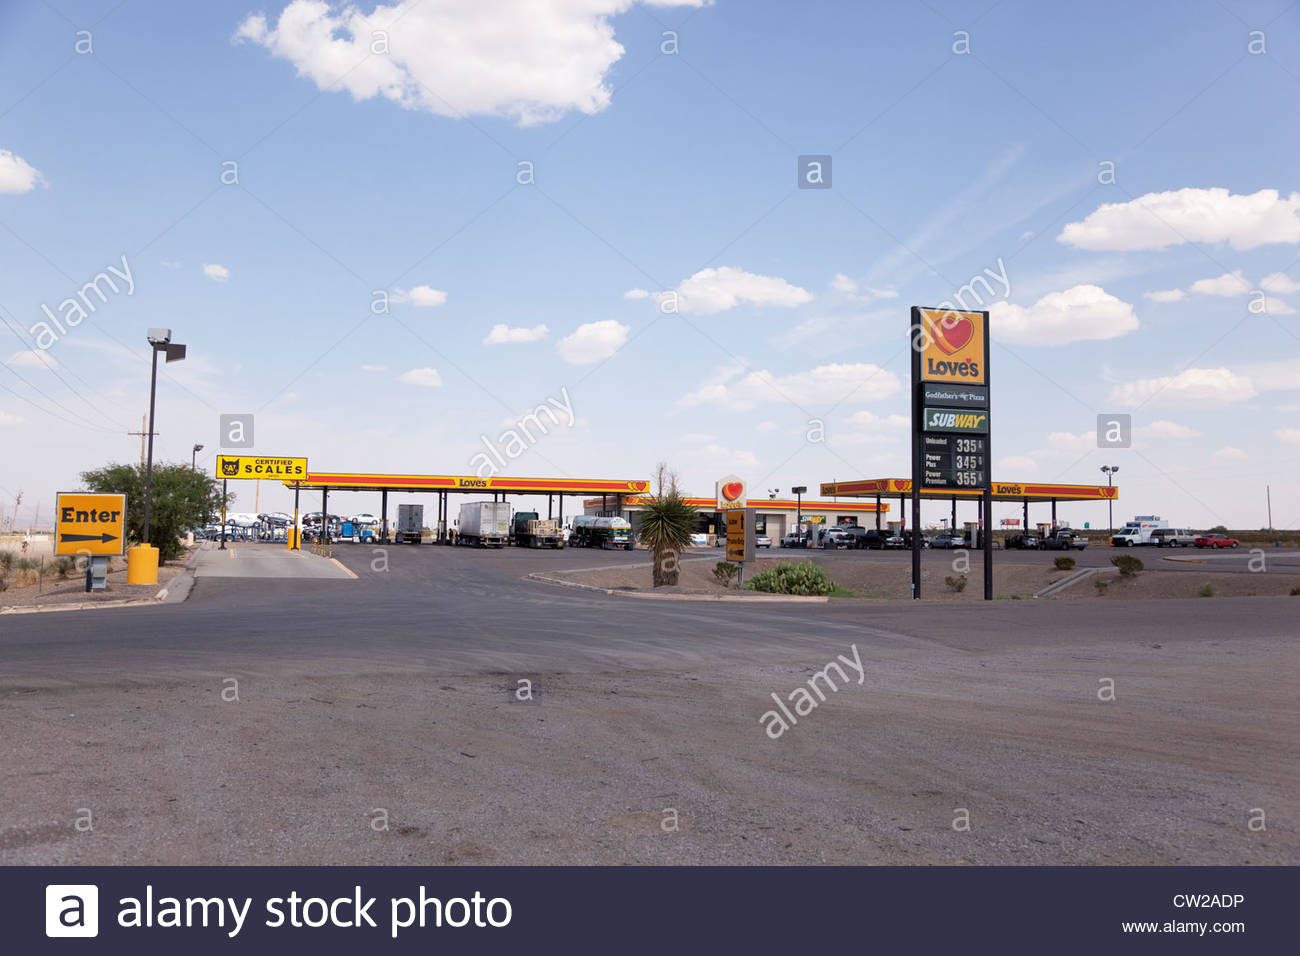 Love s truck stop lordsburg new mexico 4 people visible stock image